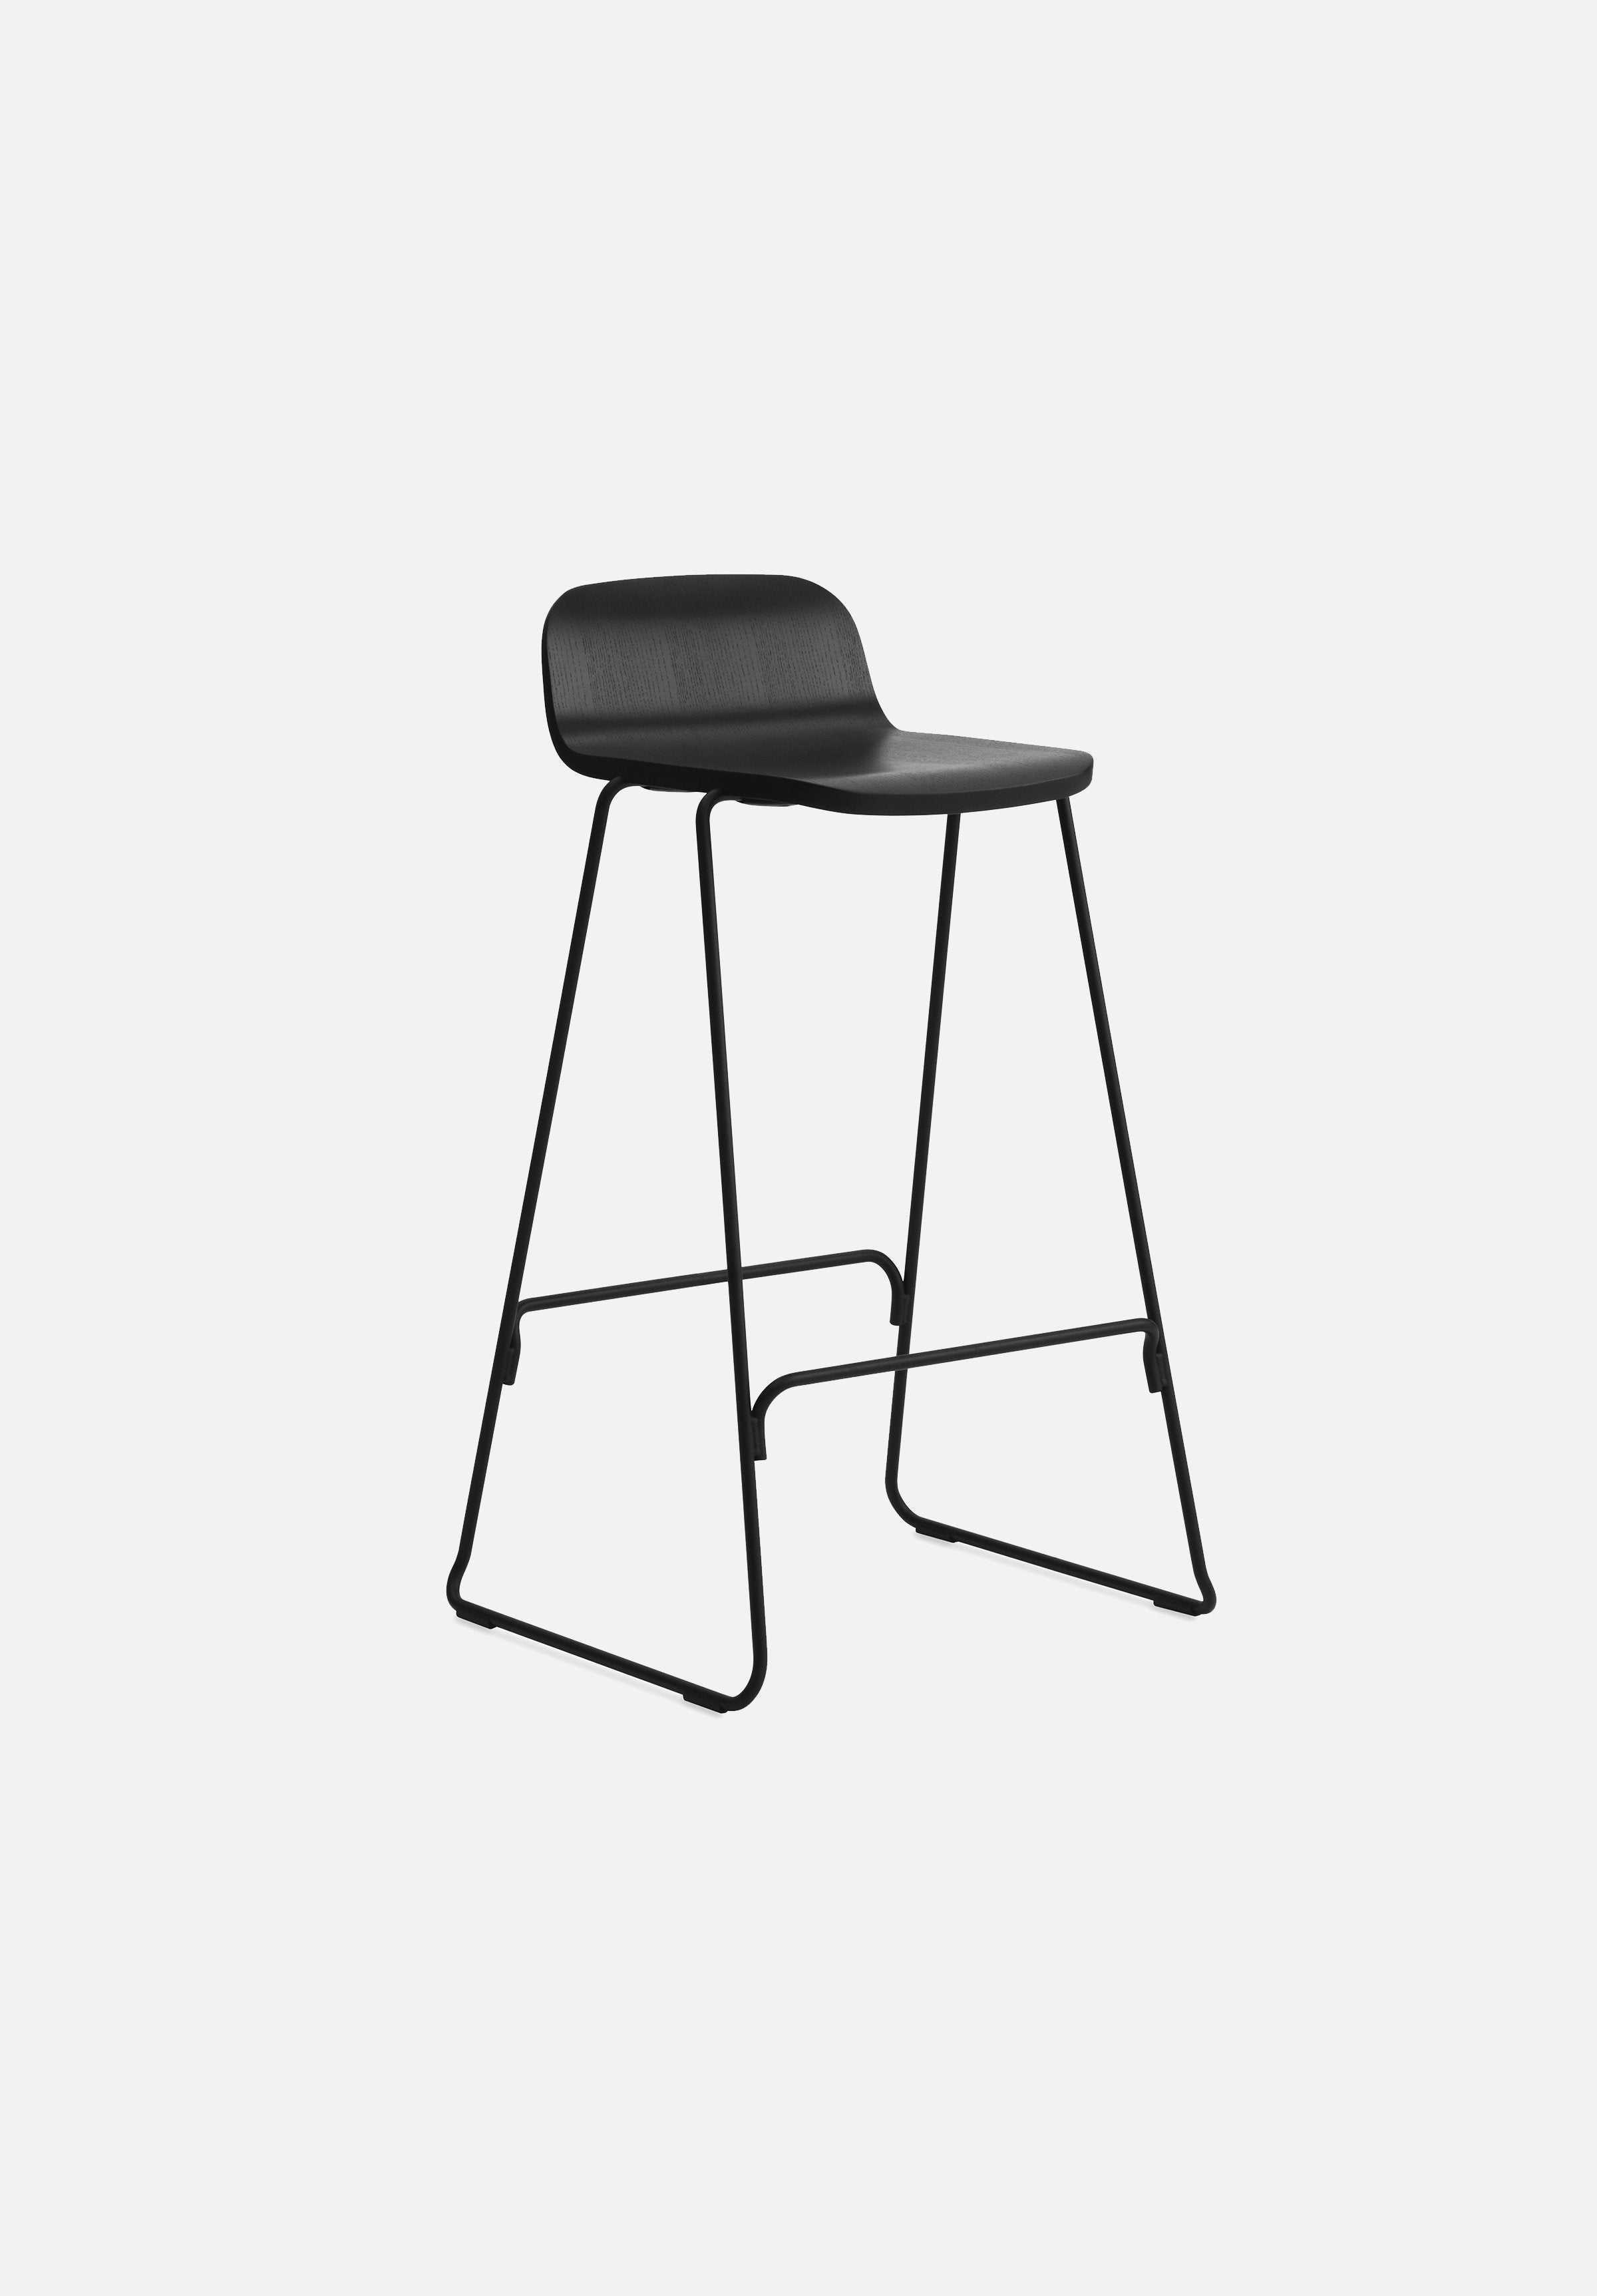 Just Stool-Iskos-Berlin-Normann Copenhagen-Black-75cm-With-Average